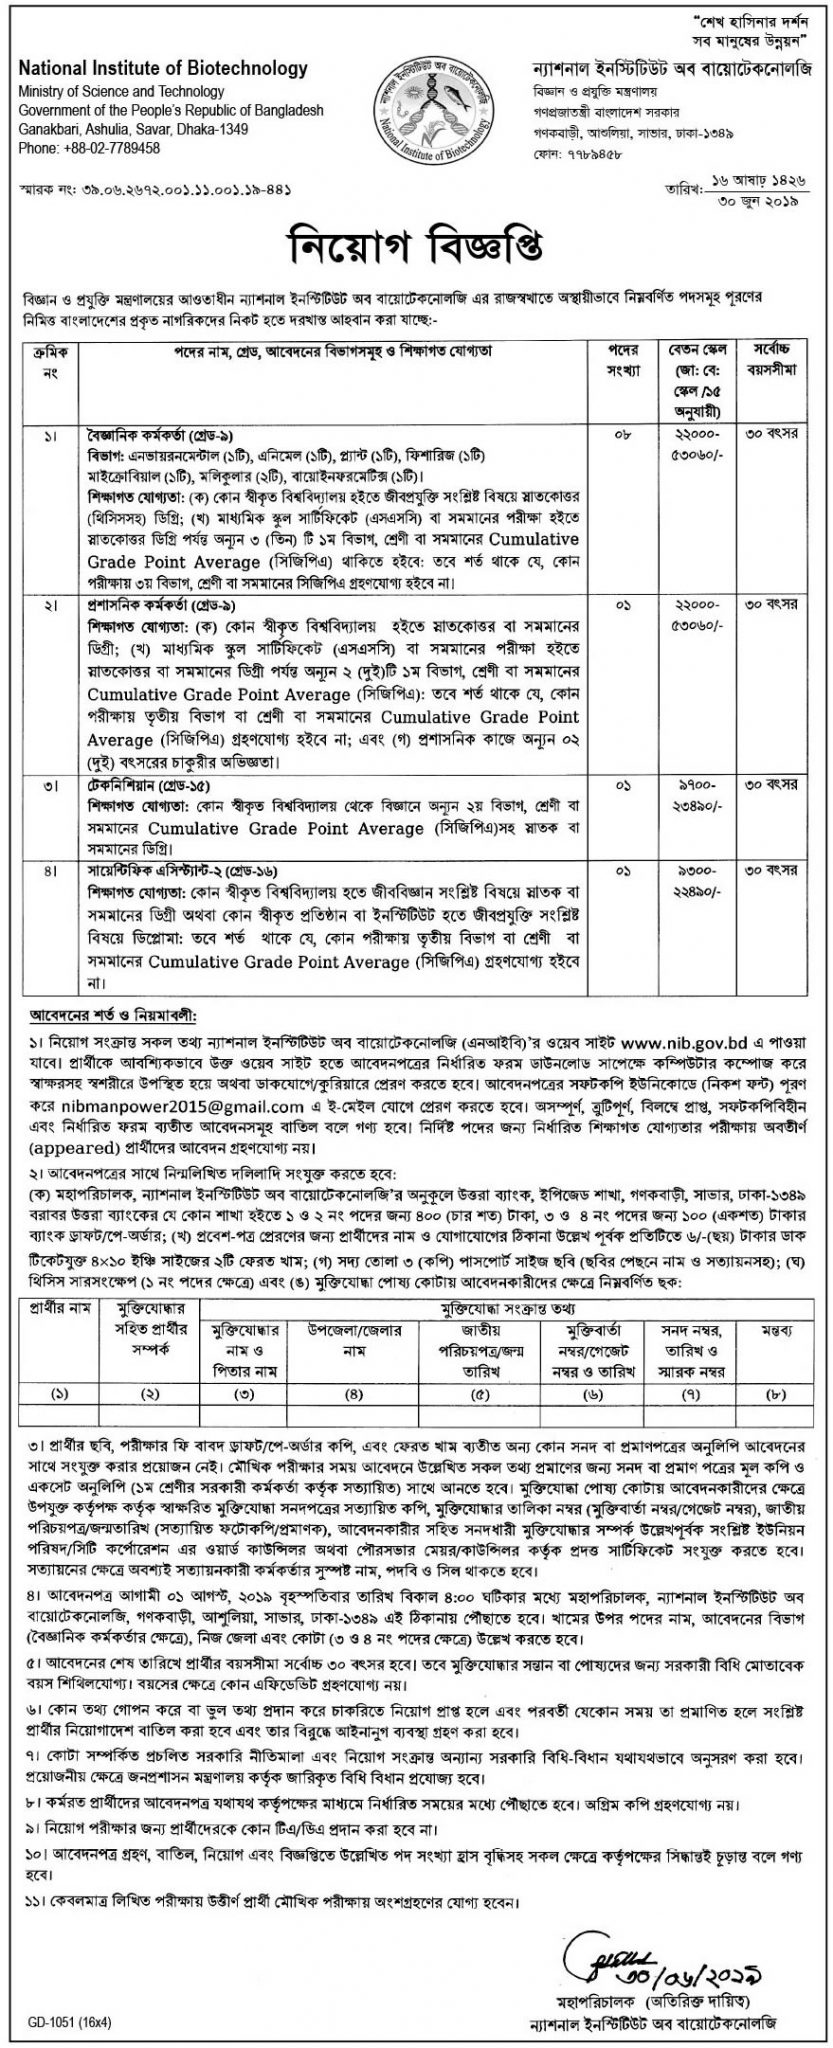 National Institute of Biotechnology Job Circular 2019